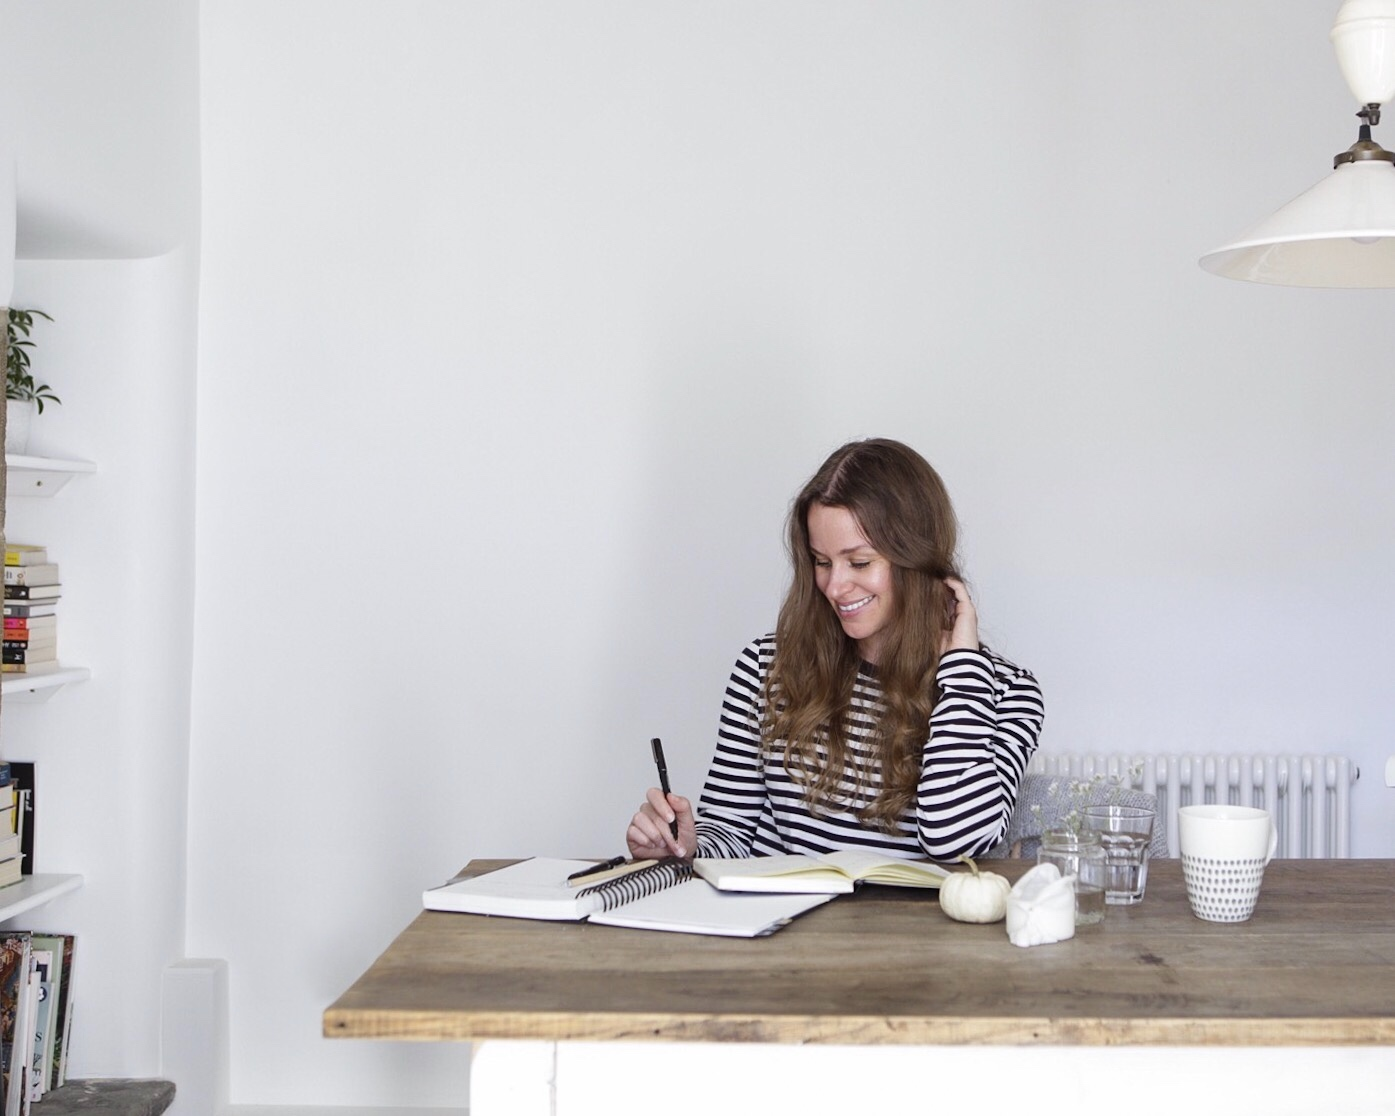 When is the right time to go freelance? Jessica Rose Williams explains.